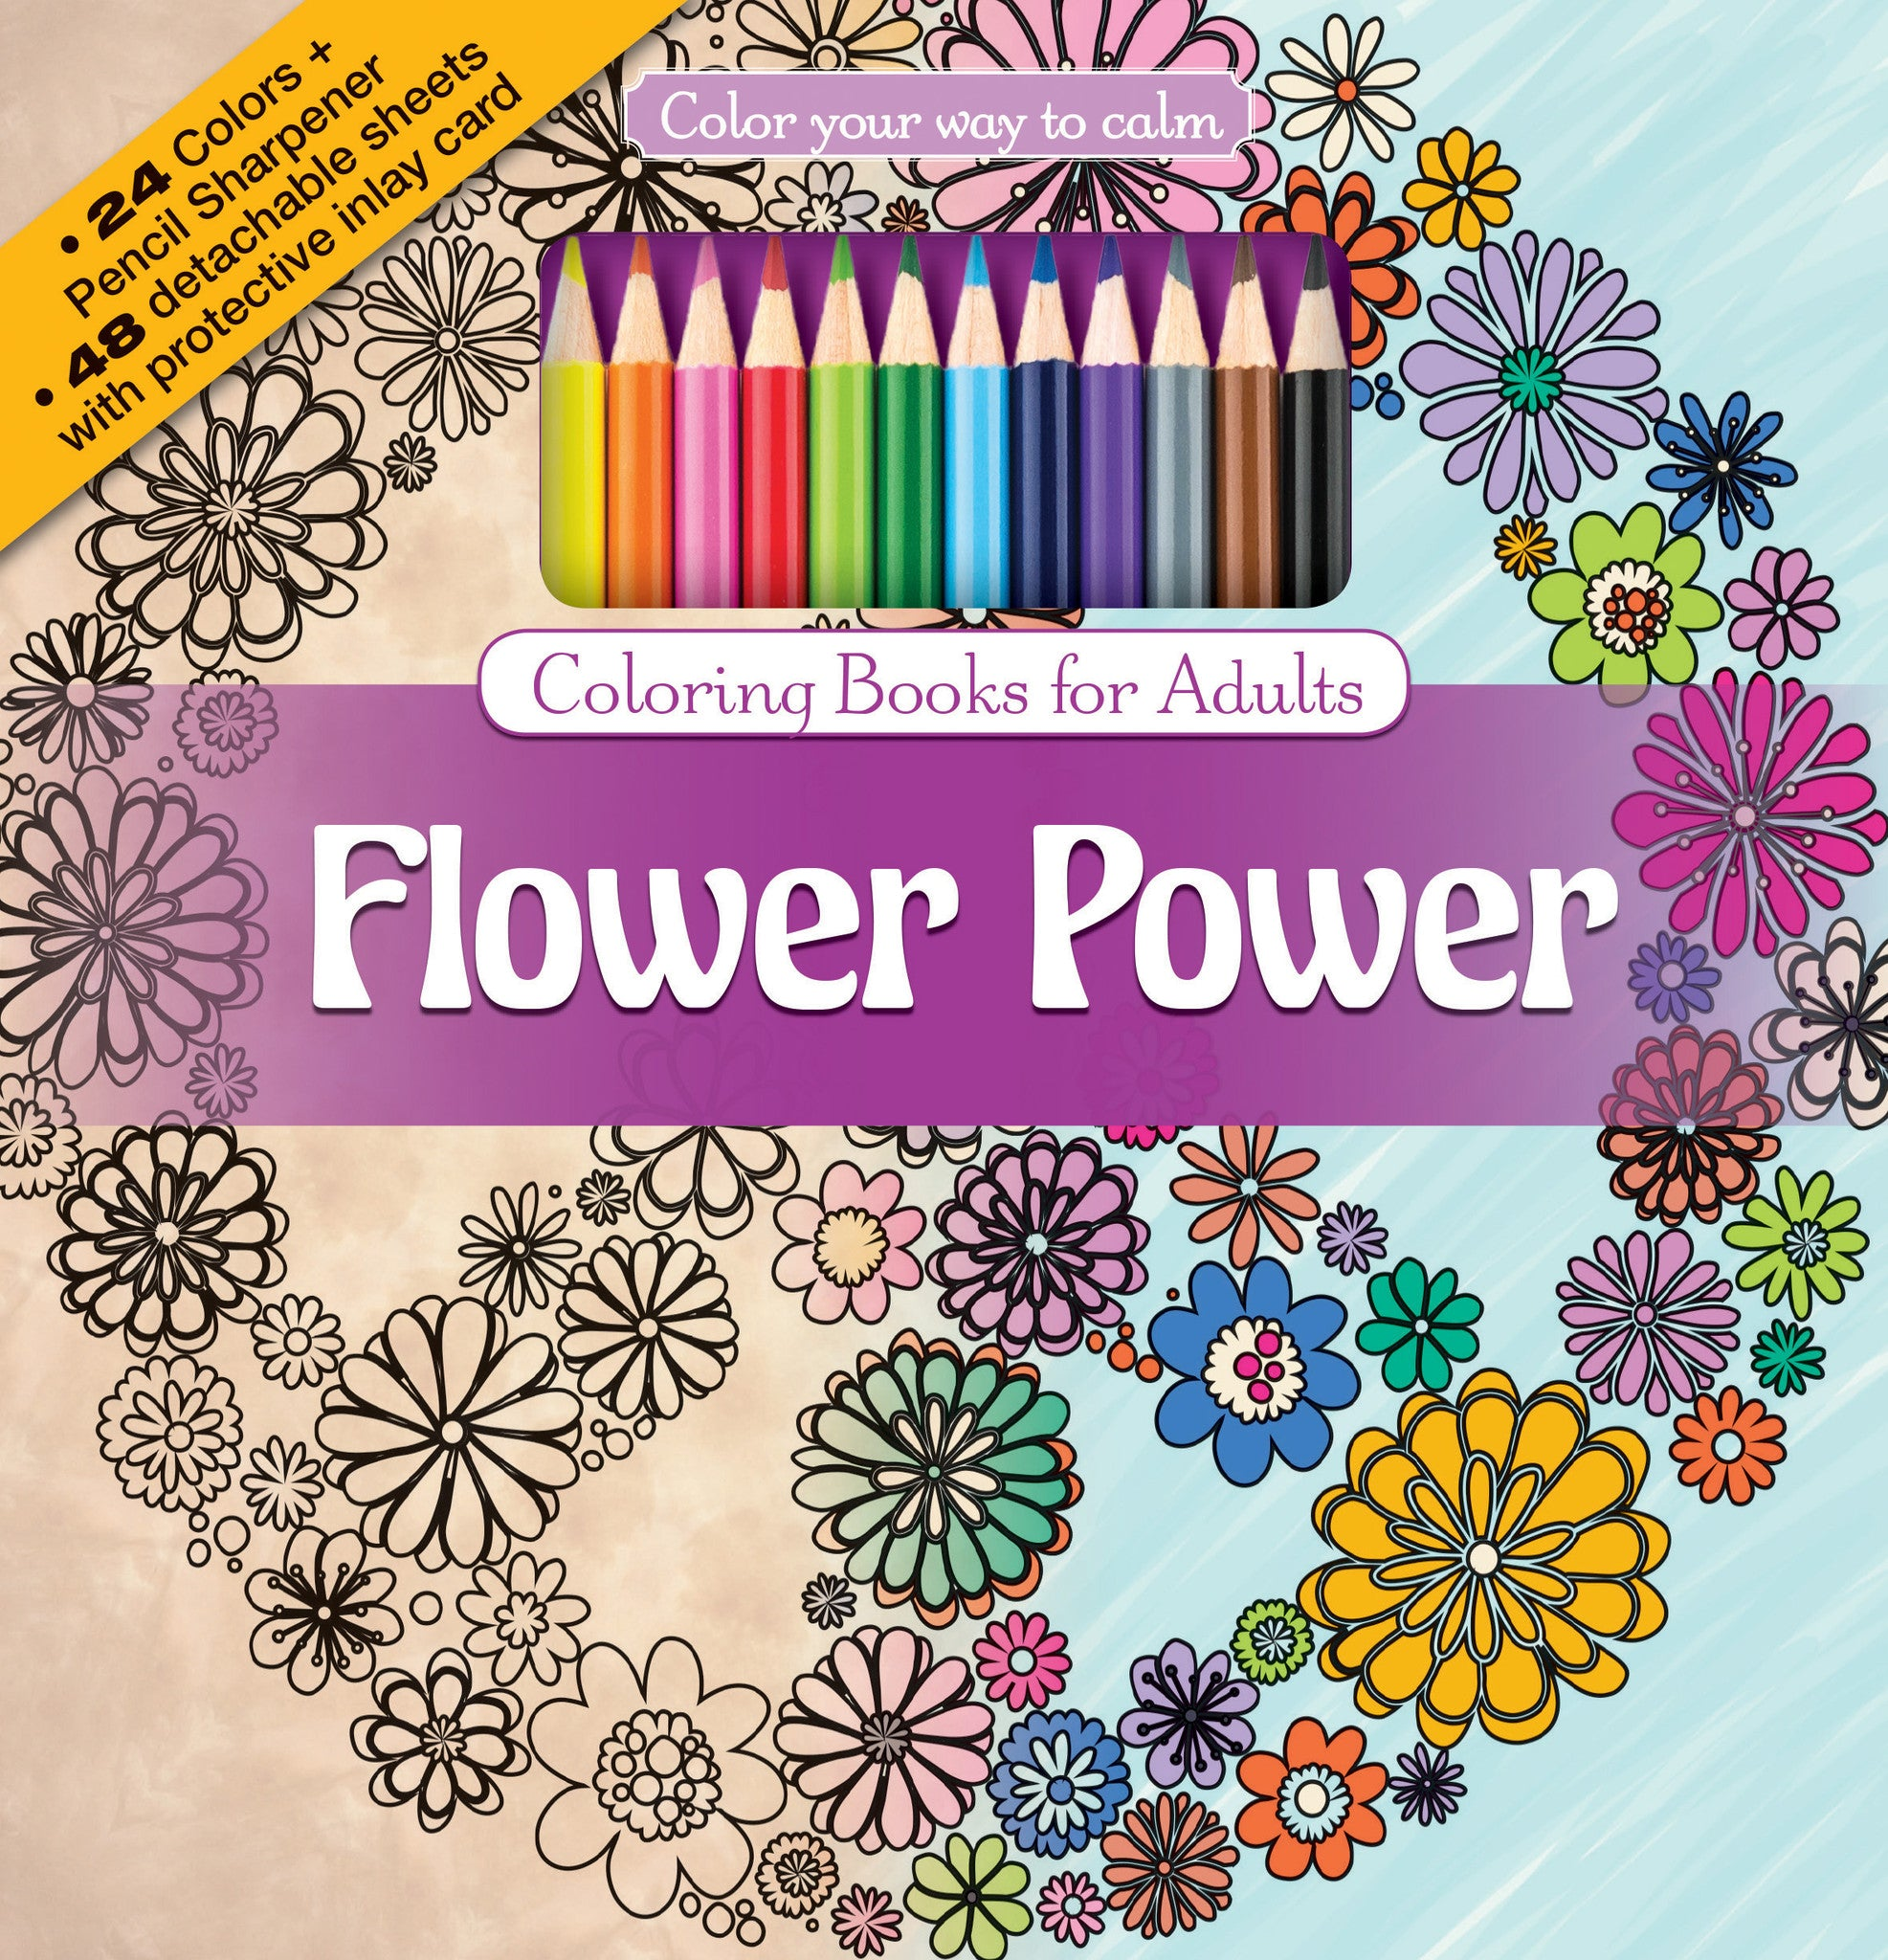 Flower Power Adult Coloring Book With Colored Pencils Cover